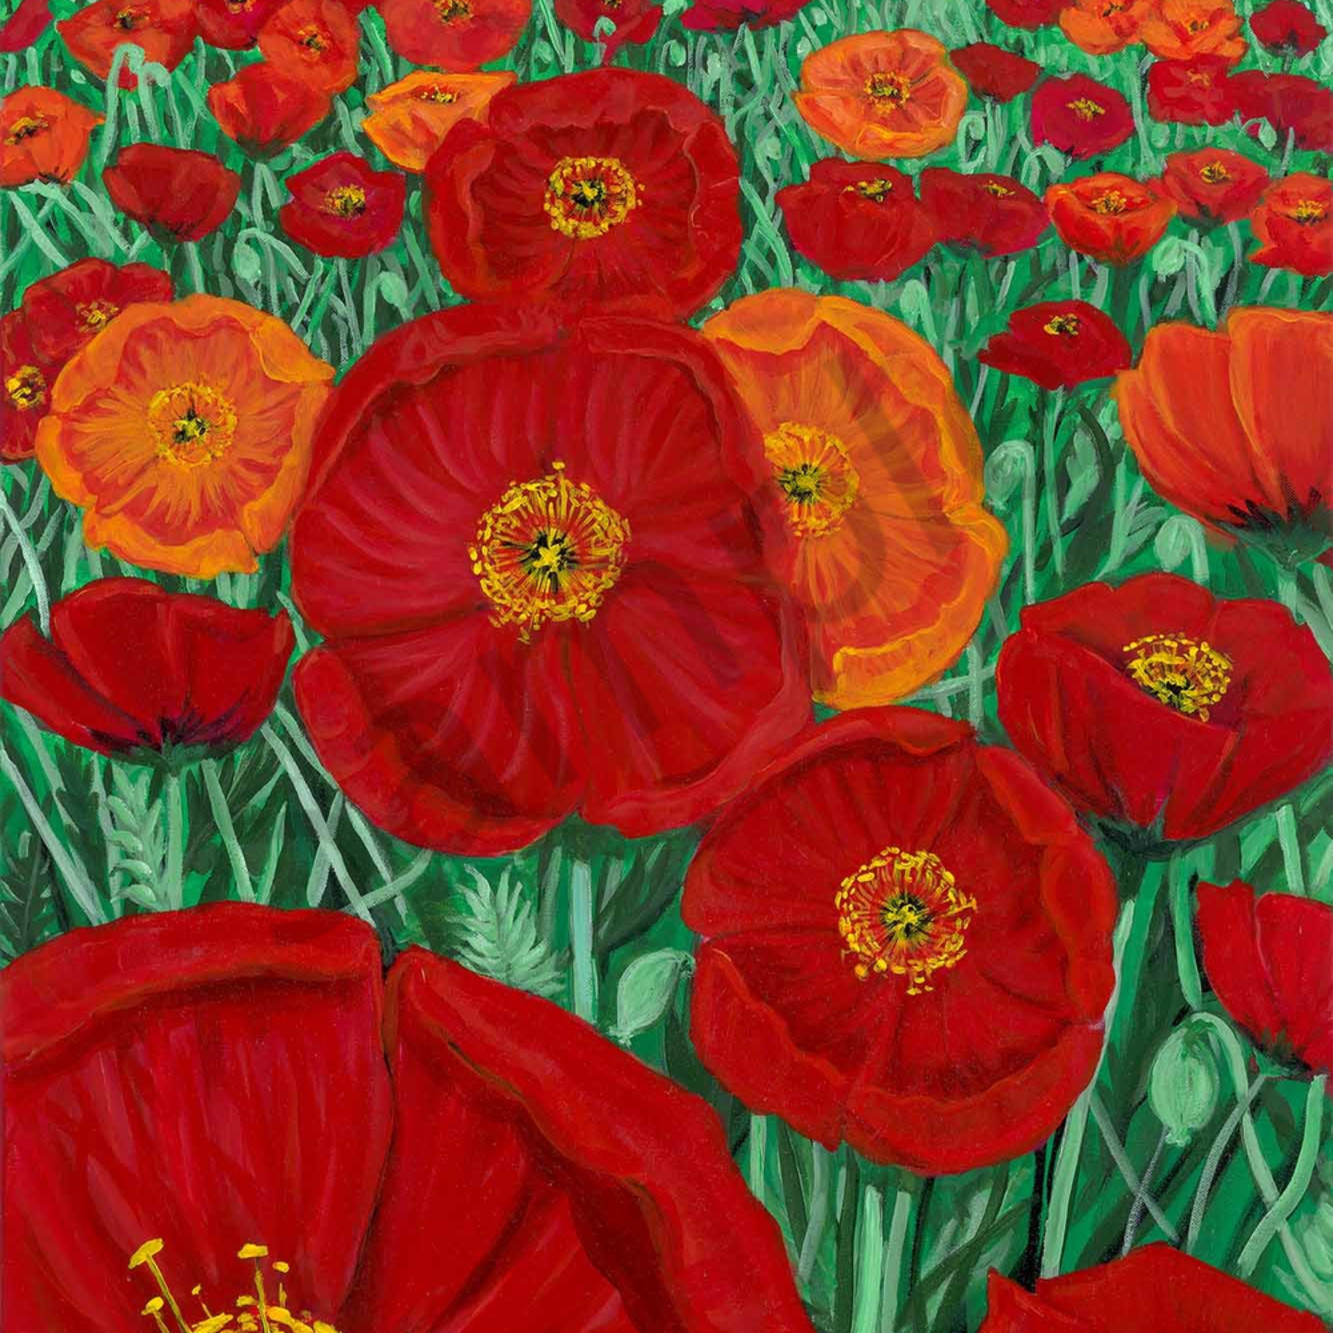 H mitra 009 a field of poppies 2000px vf4mqw